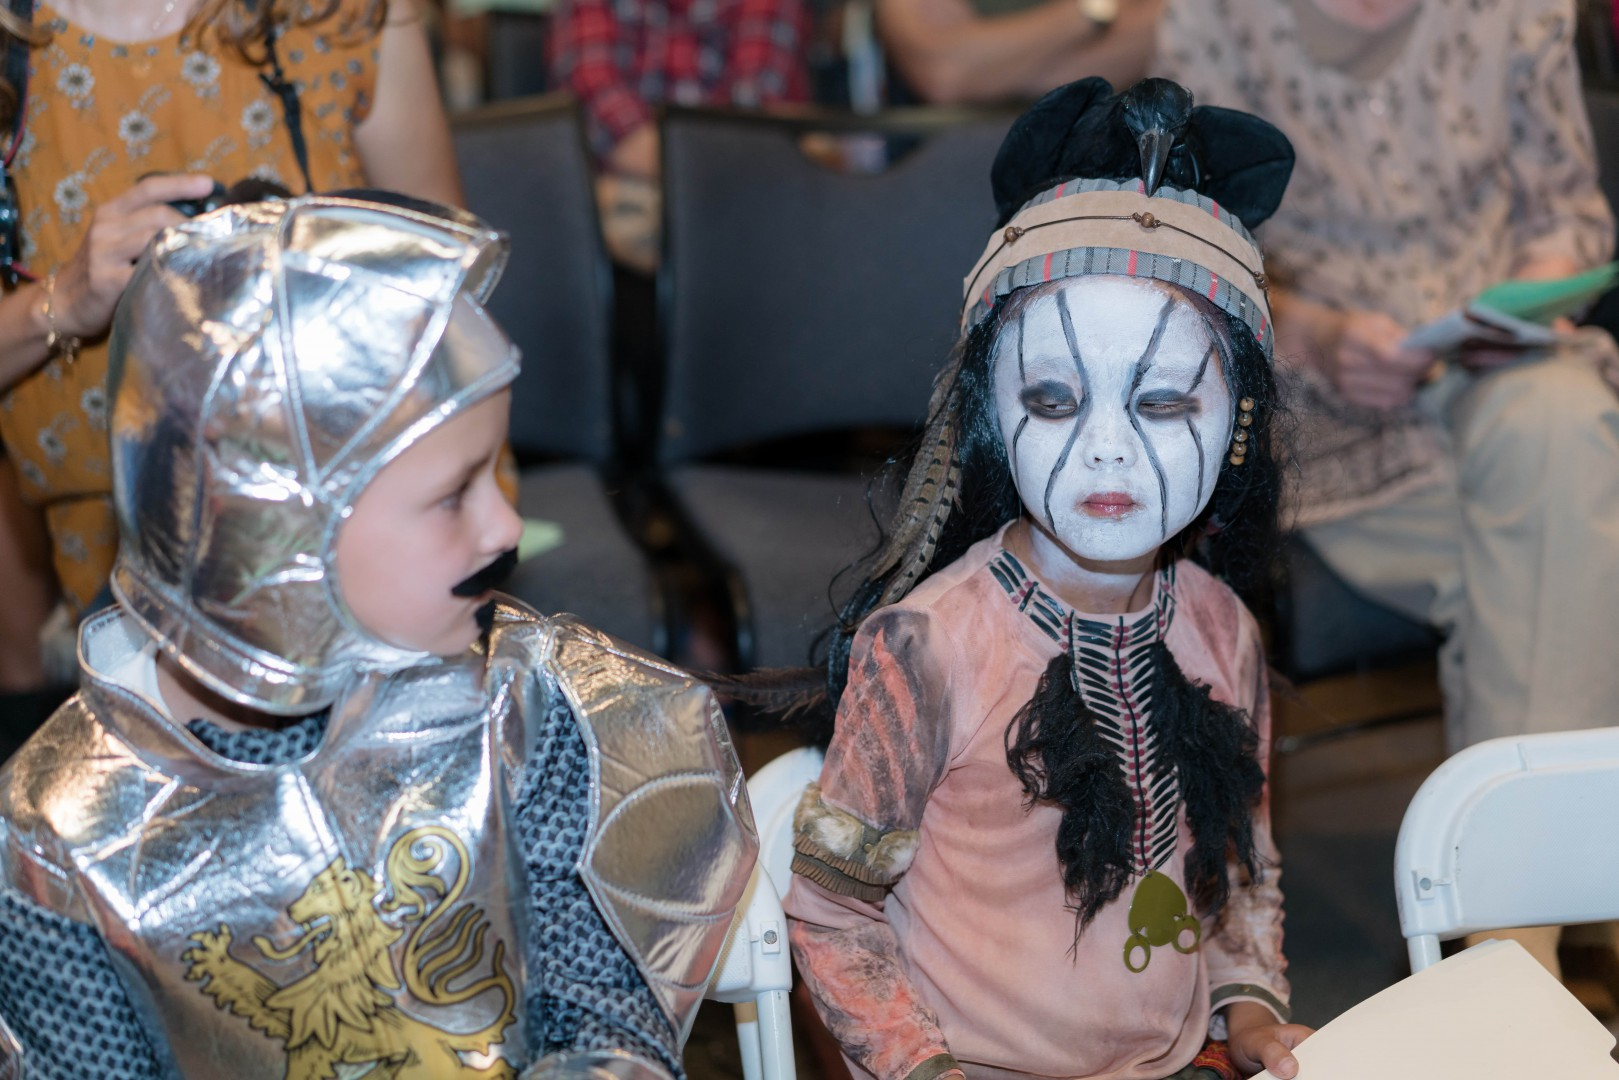 Two young children wearing their costume